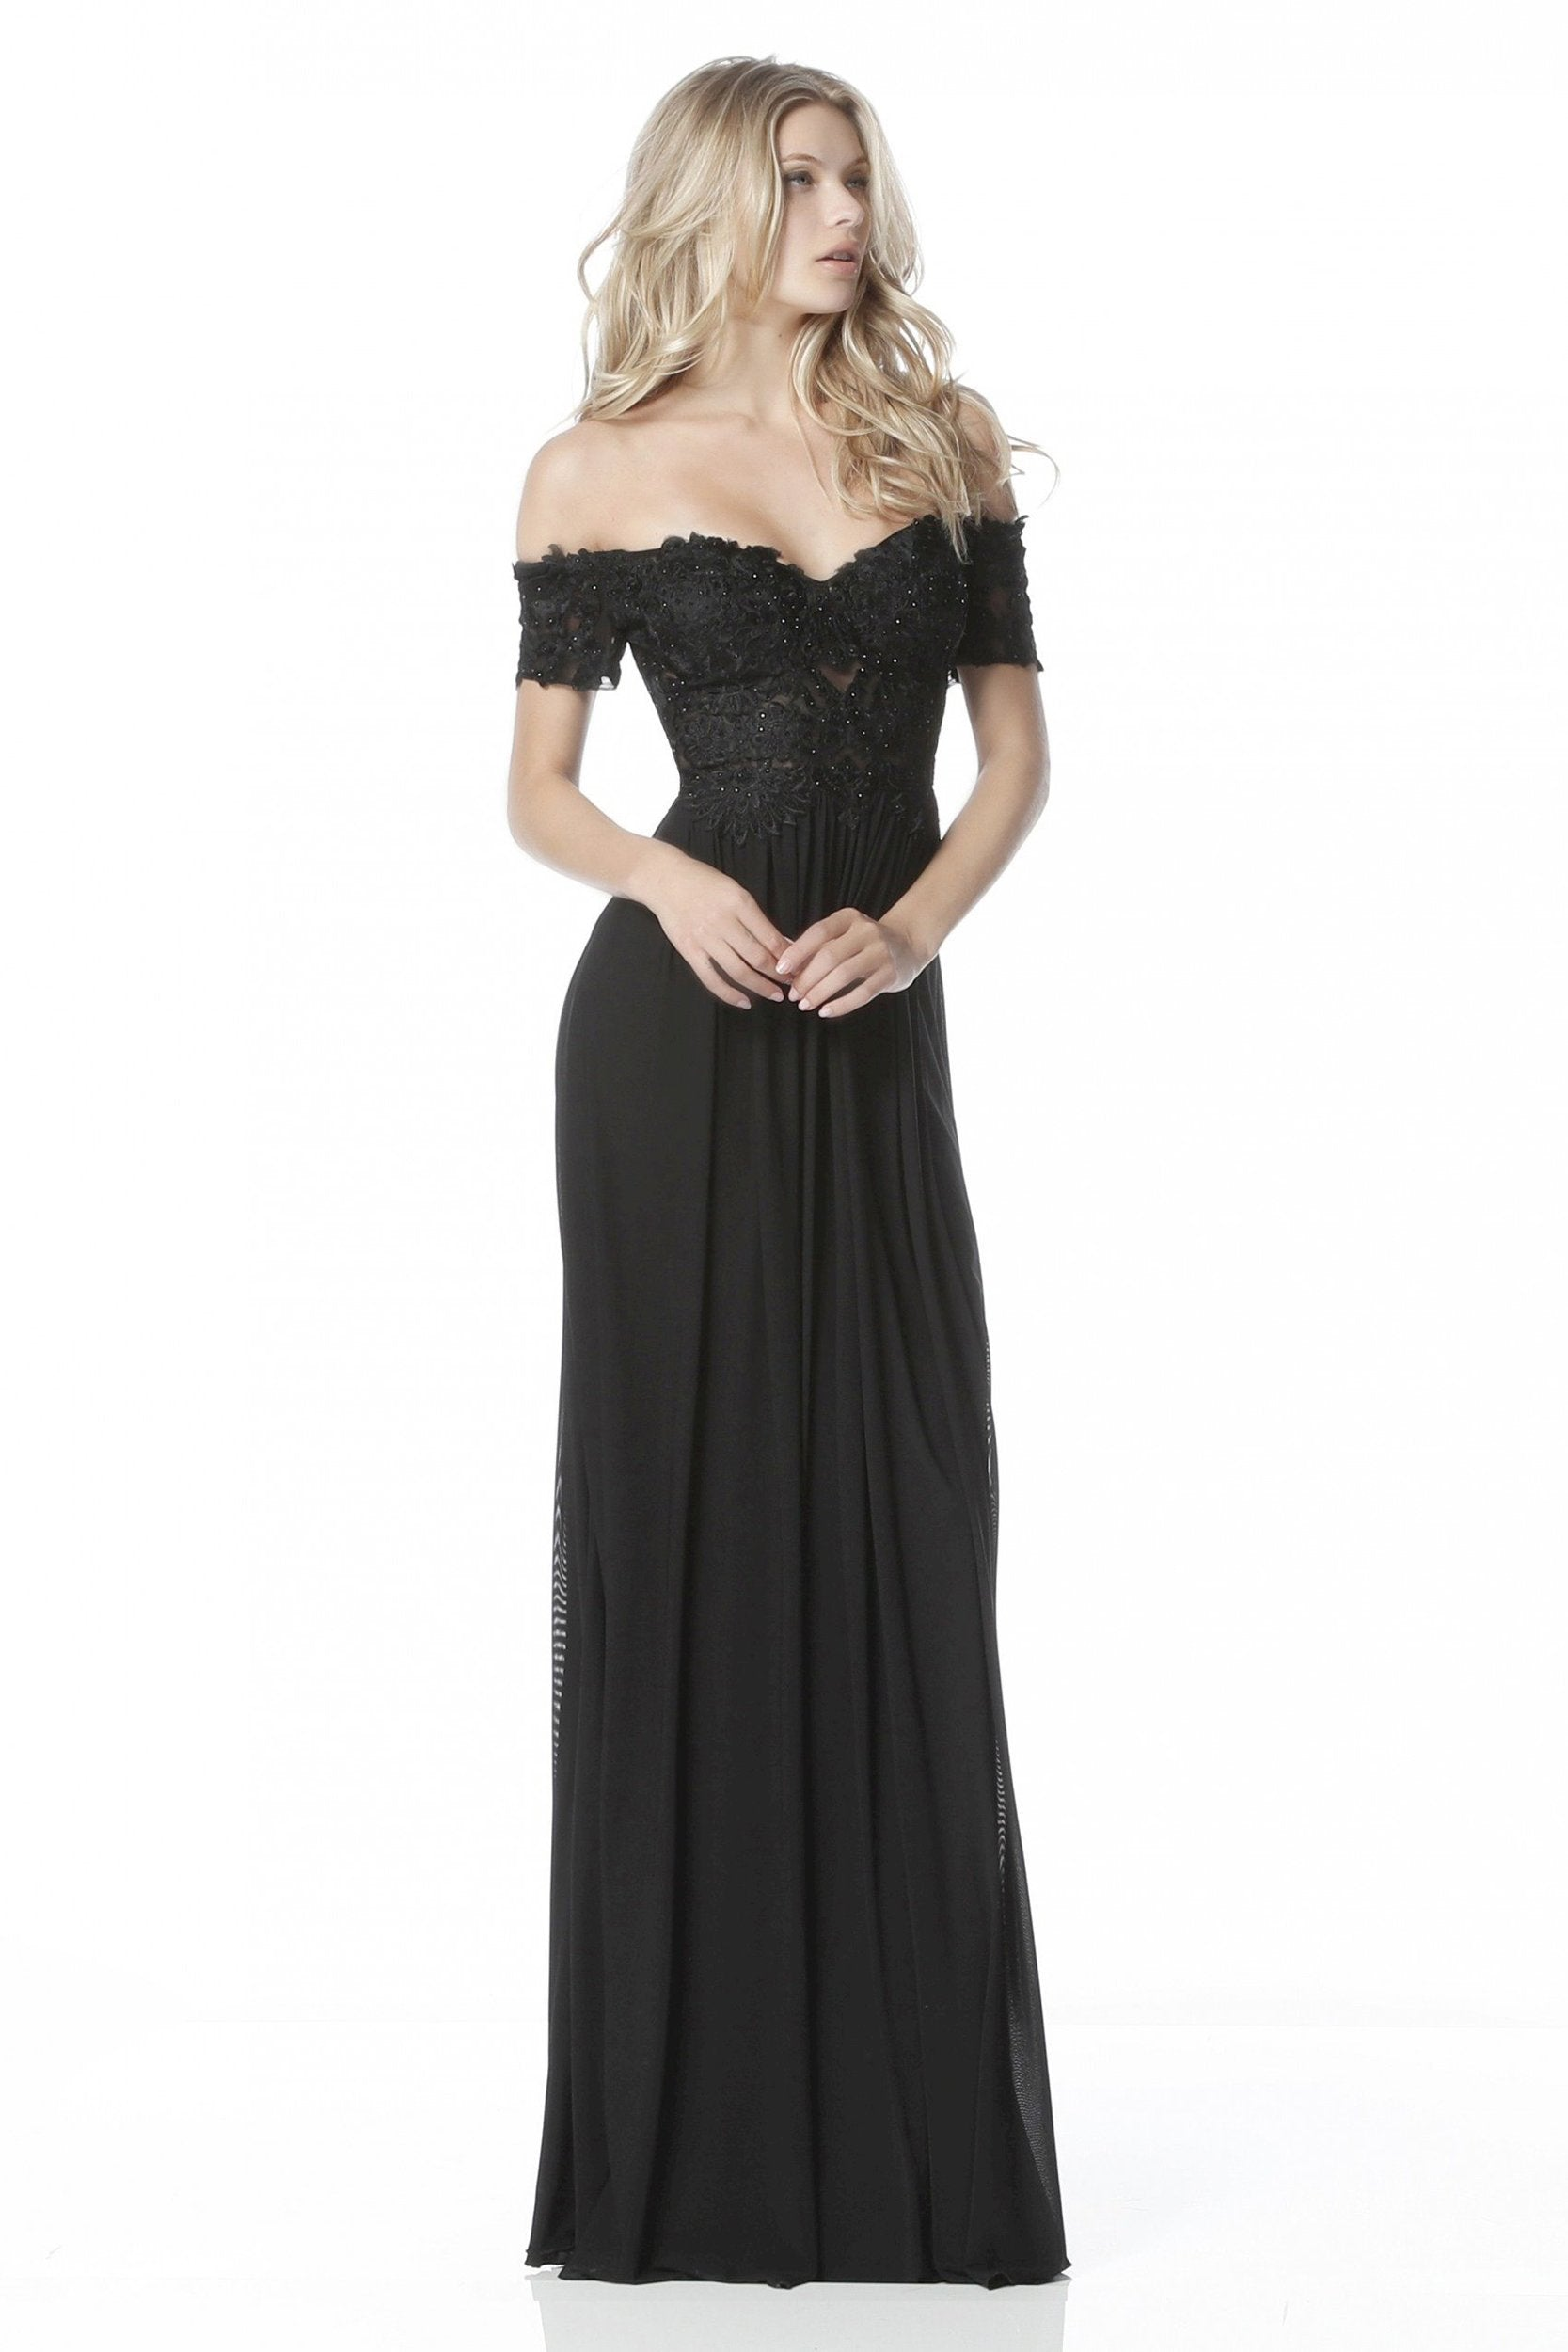 Sherri Hill - Beaded Lace Off-Shoulder A-Line Evening Gown 51556 In Black